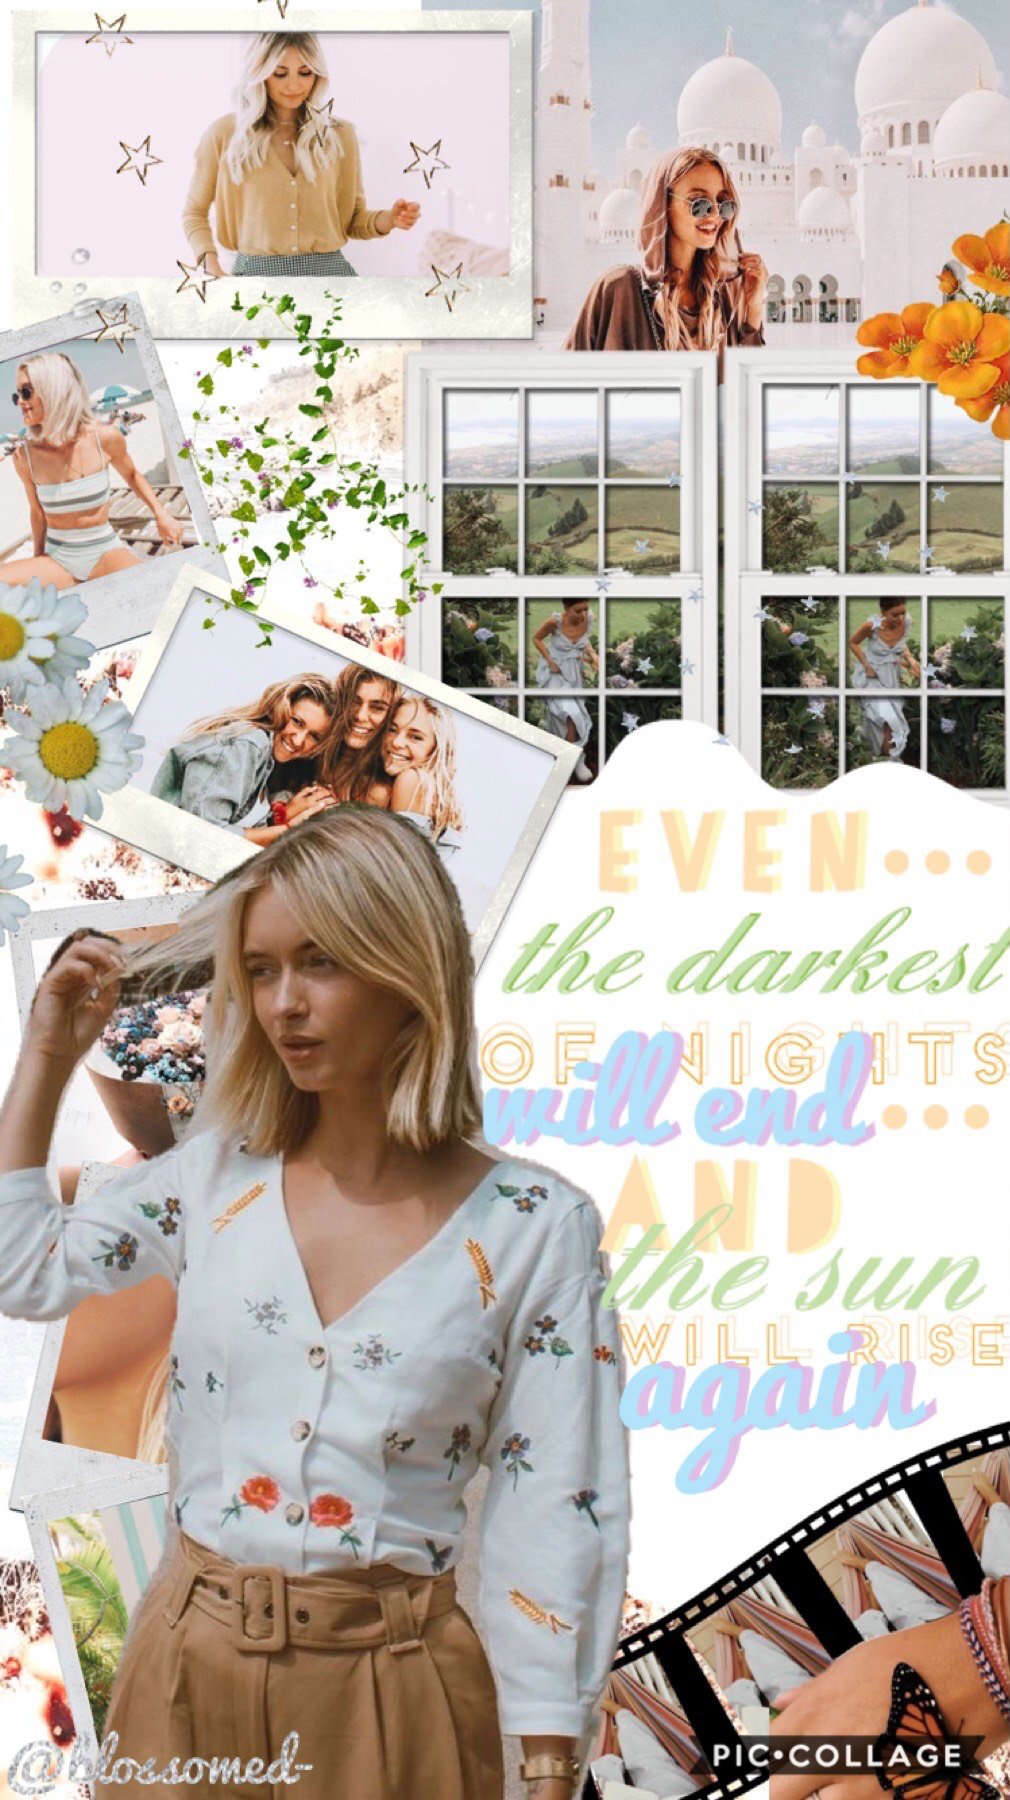 hey guys!! I've got so many premade collages to post🤭 I think I might start doing this theme for a bit, I'm so stuck with styles and Inspo i might have to leave for a bit🤔 how is everyone?? I'm great xox